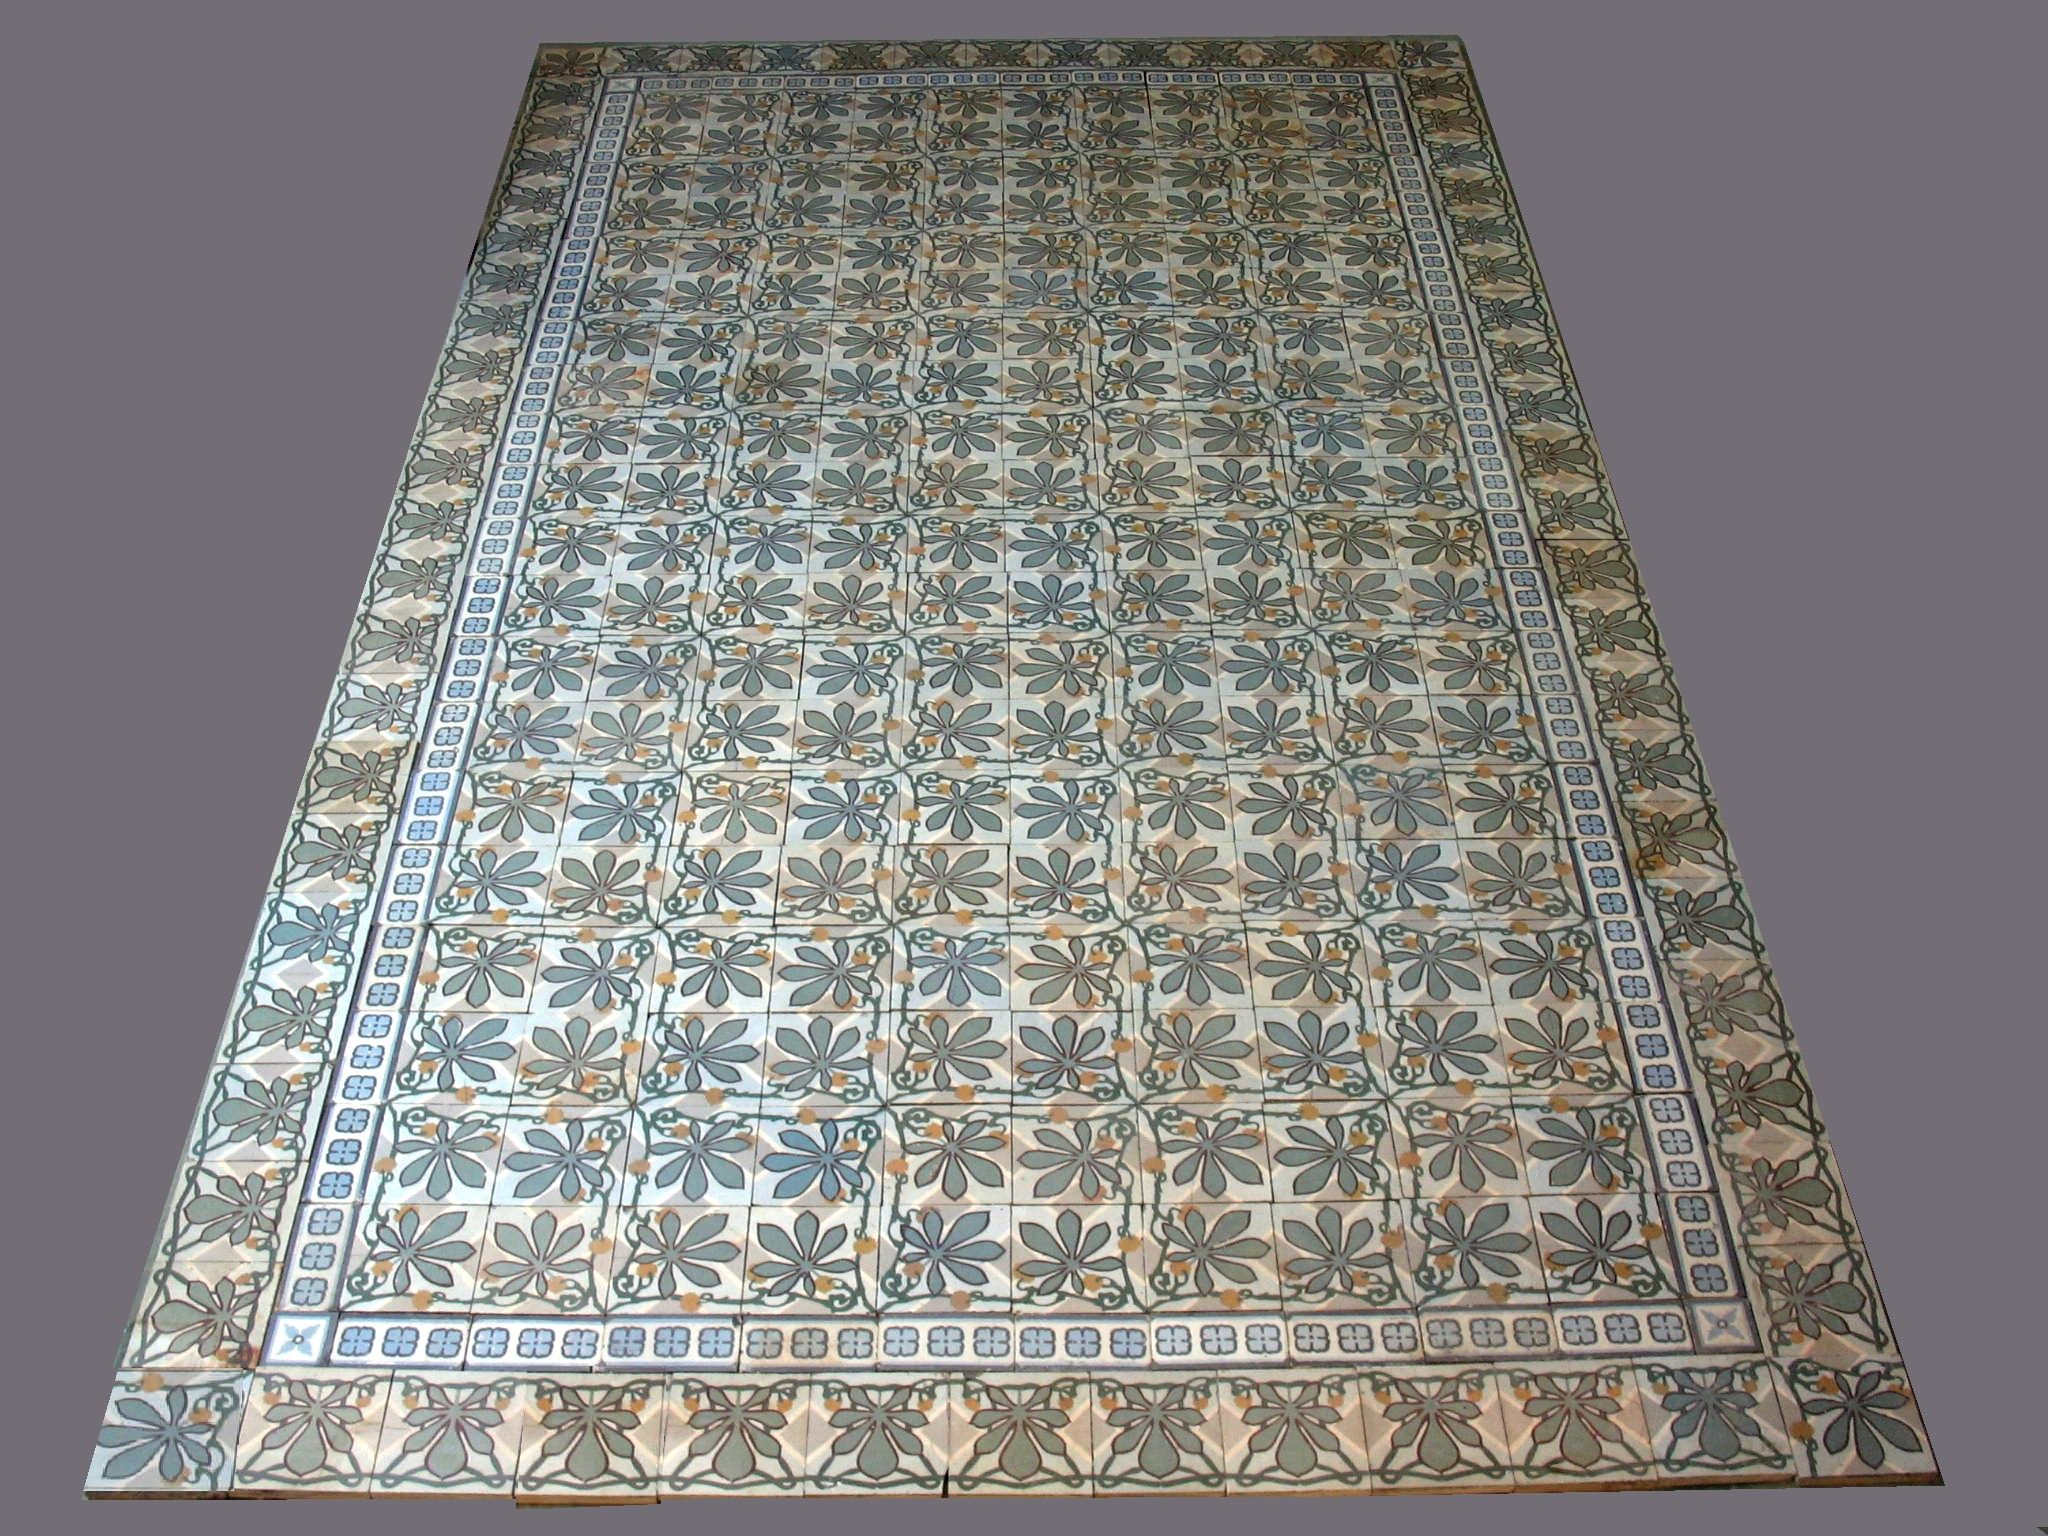 french tiles douzies maubeuge tapis carrelage ancien